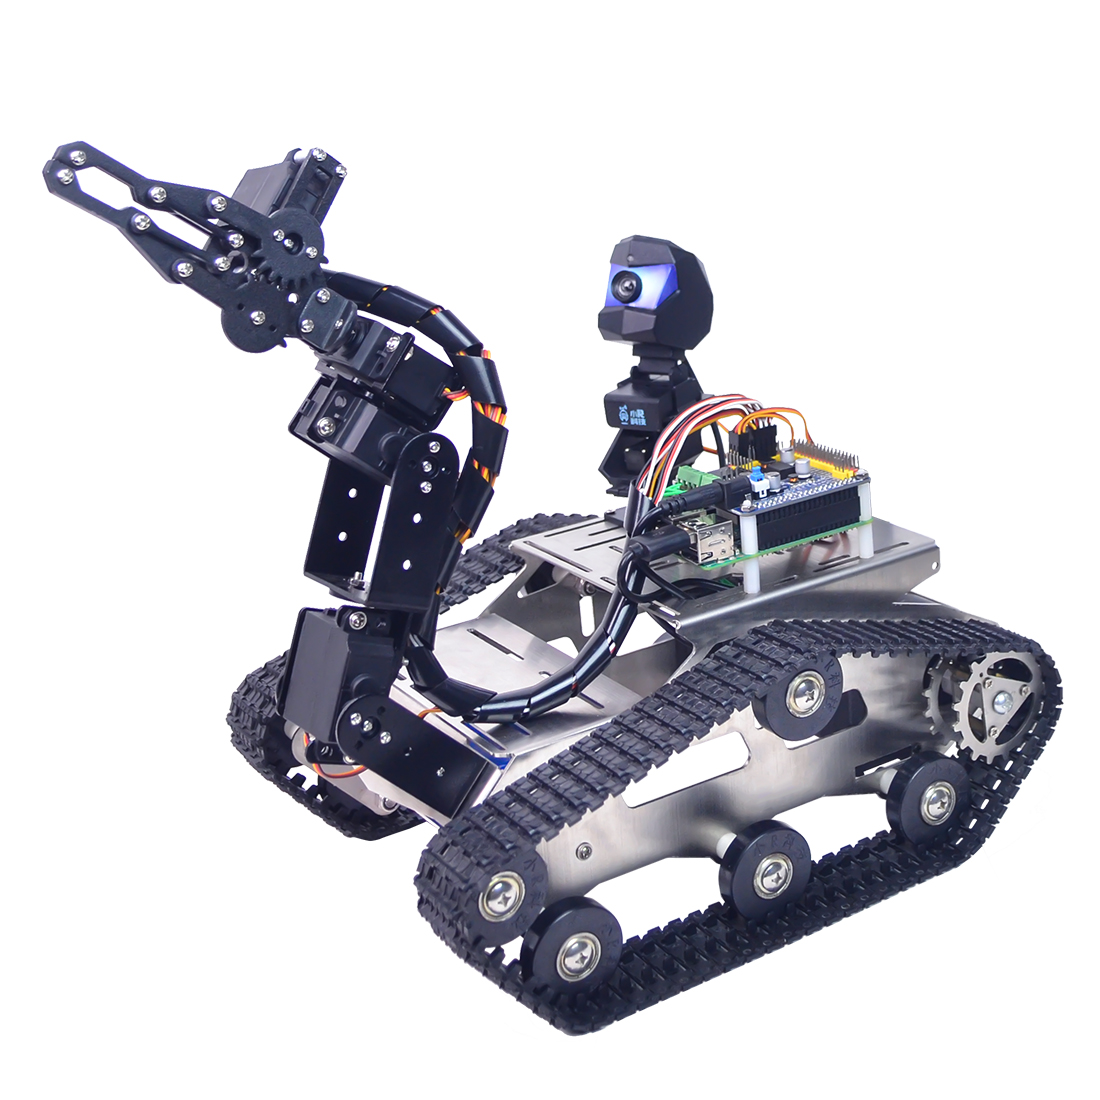 Small Claw Programmable TH WiFi Bluetooth FPV Tank Robot Car Kit With Arm For  Arduino MEGA Line Patrol Obstacle Avoidance